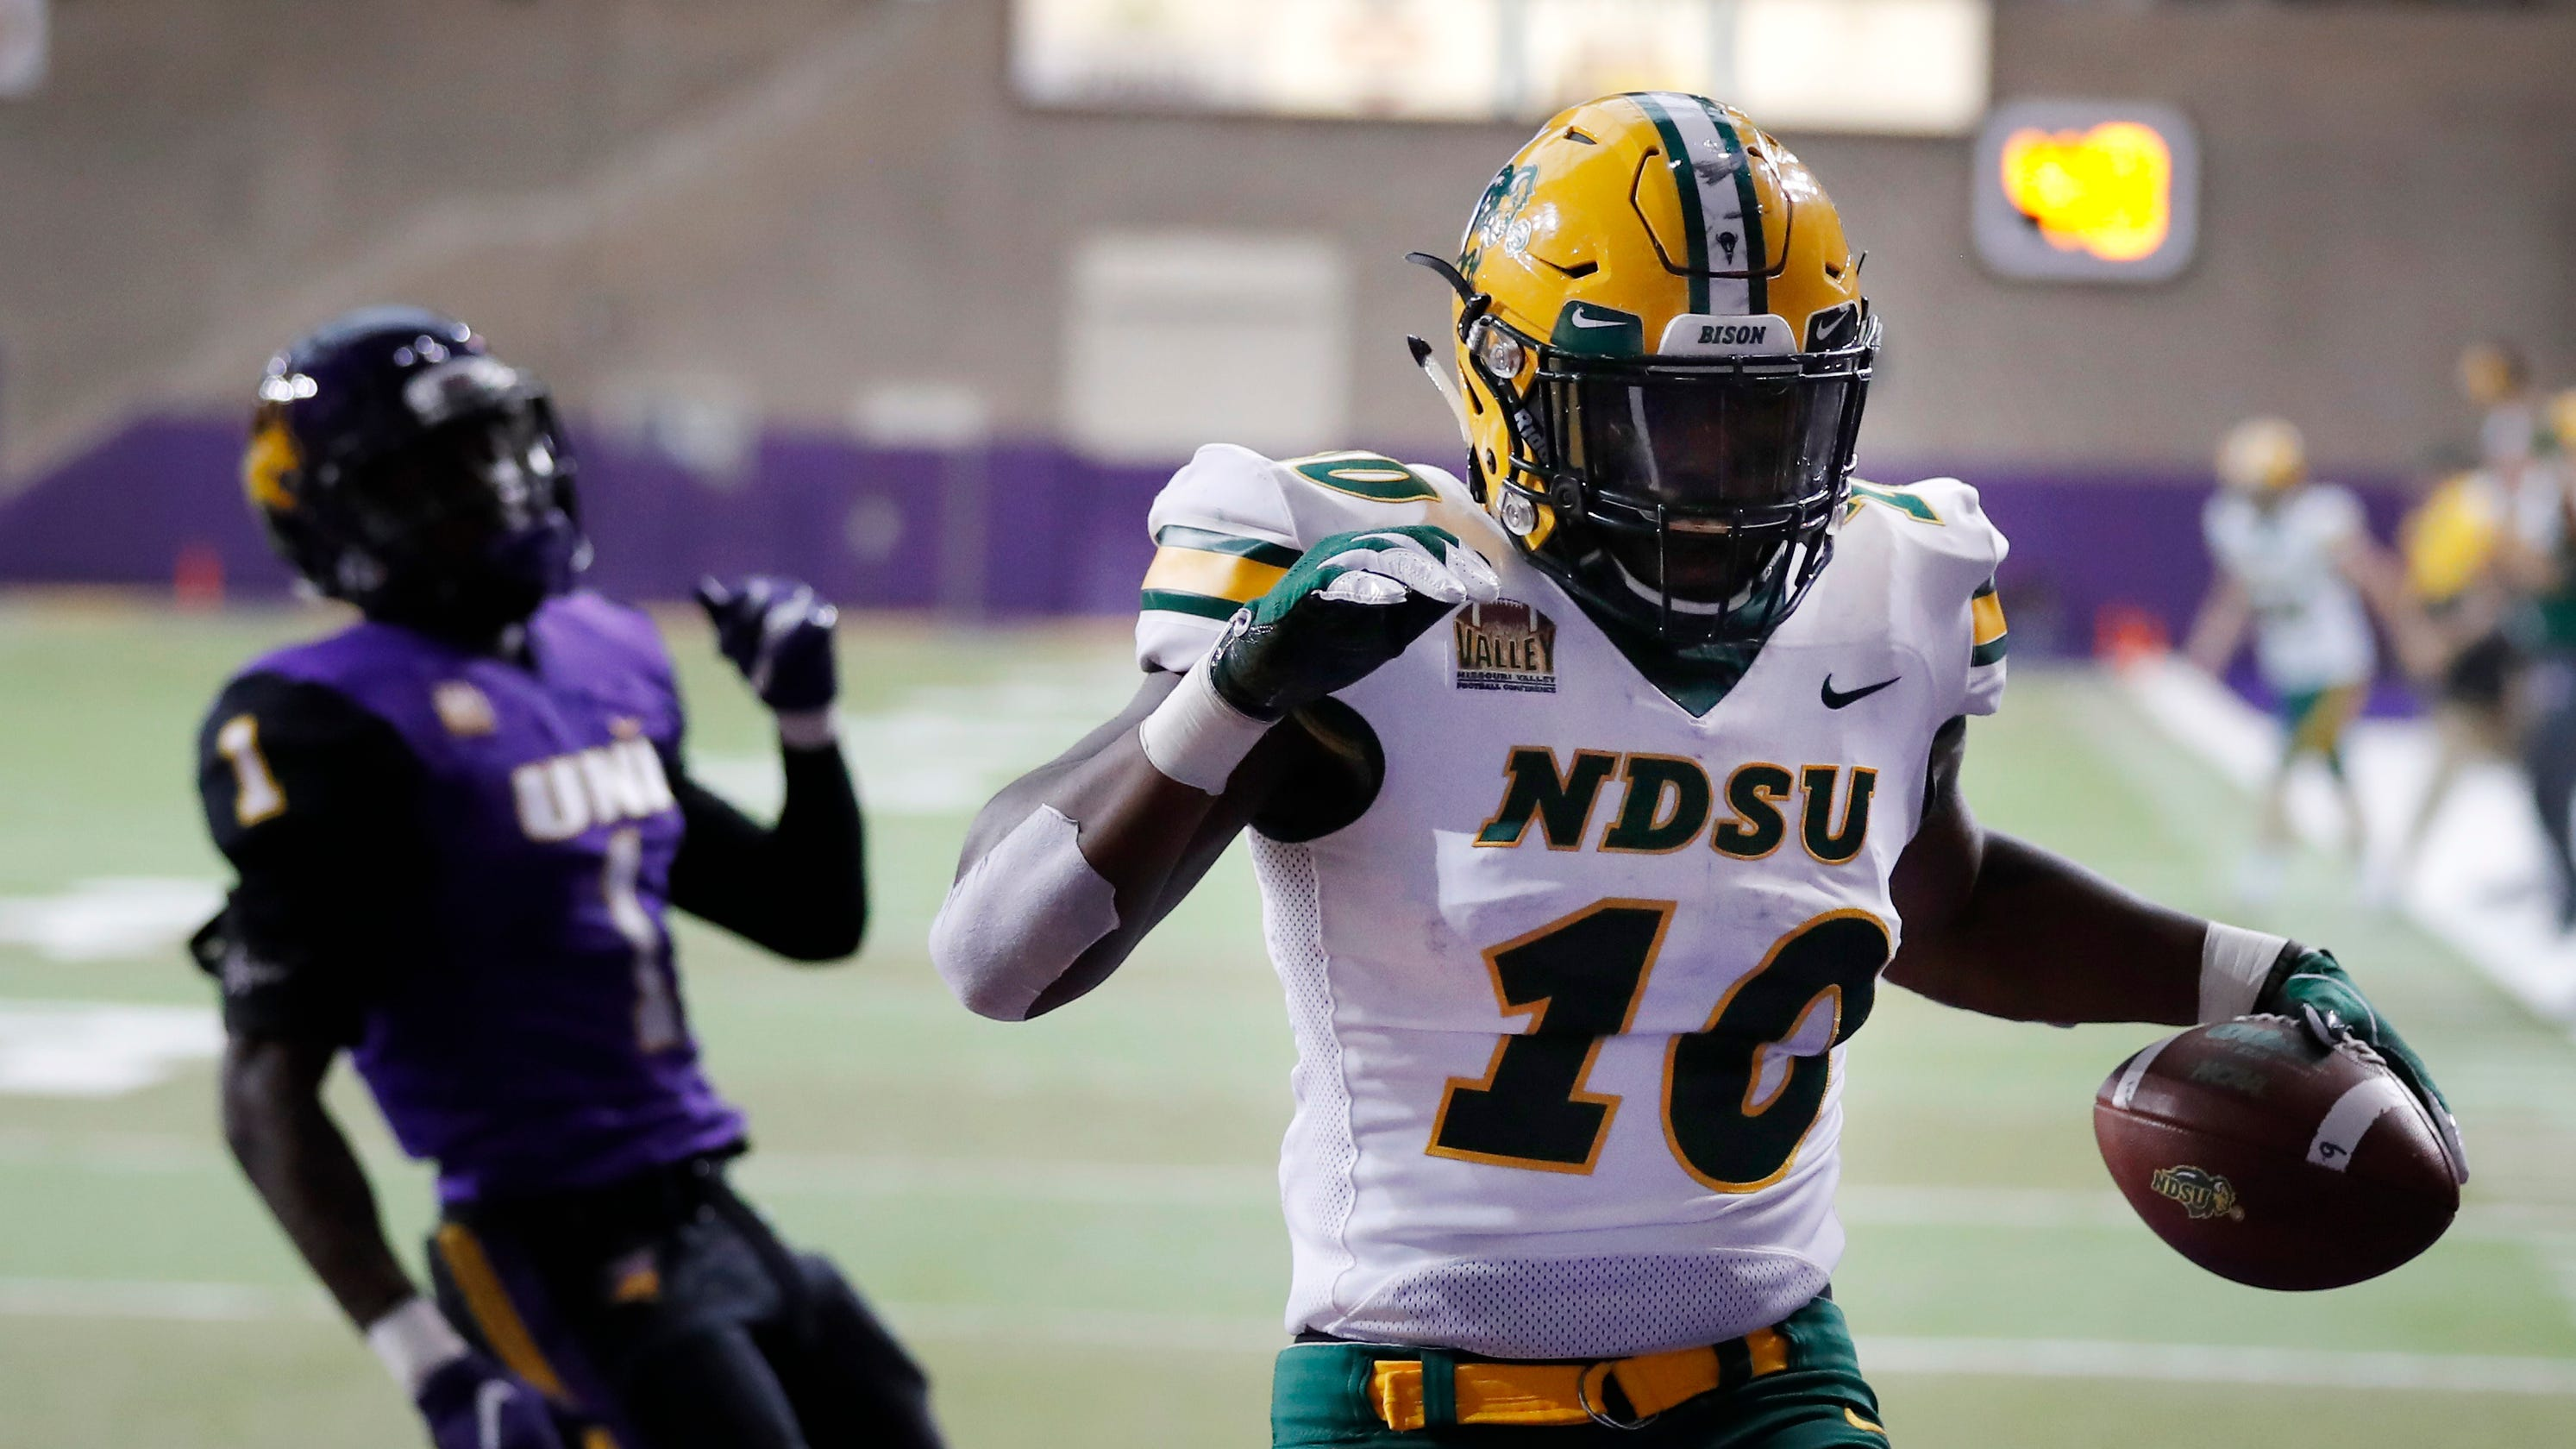 UNI football: What we learned from No. 1 North Dakota ...